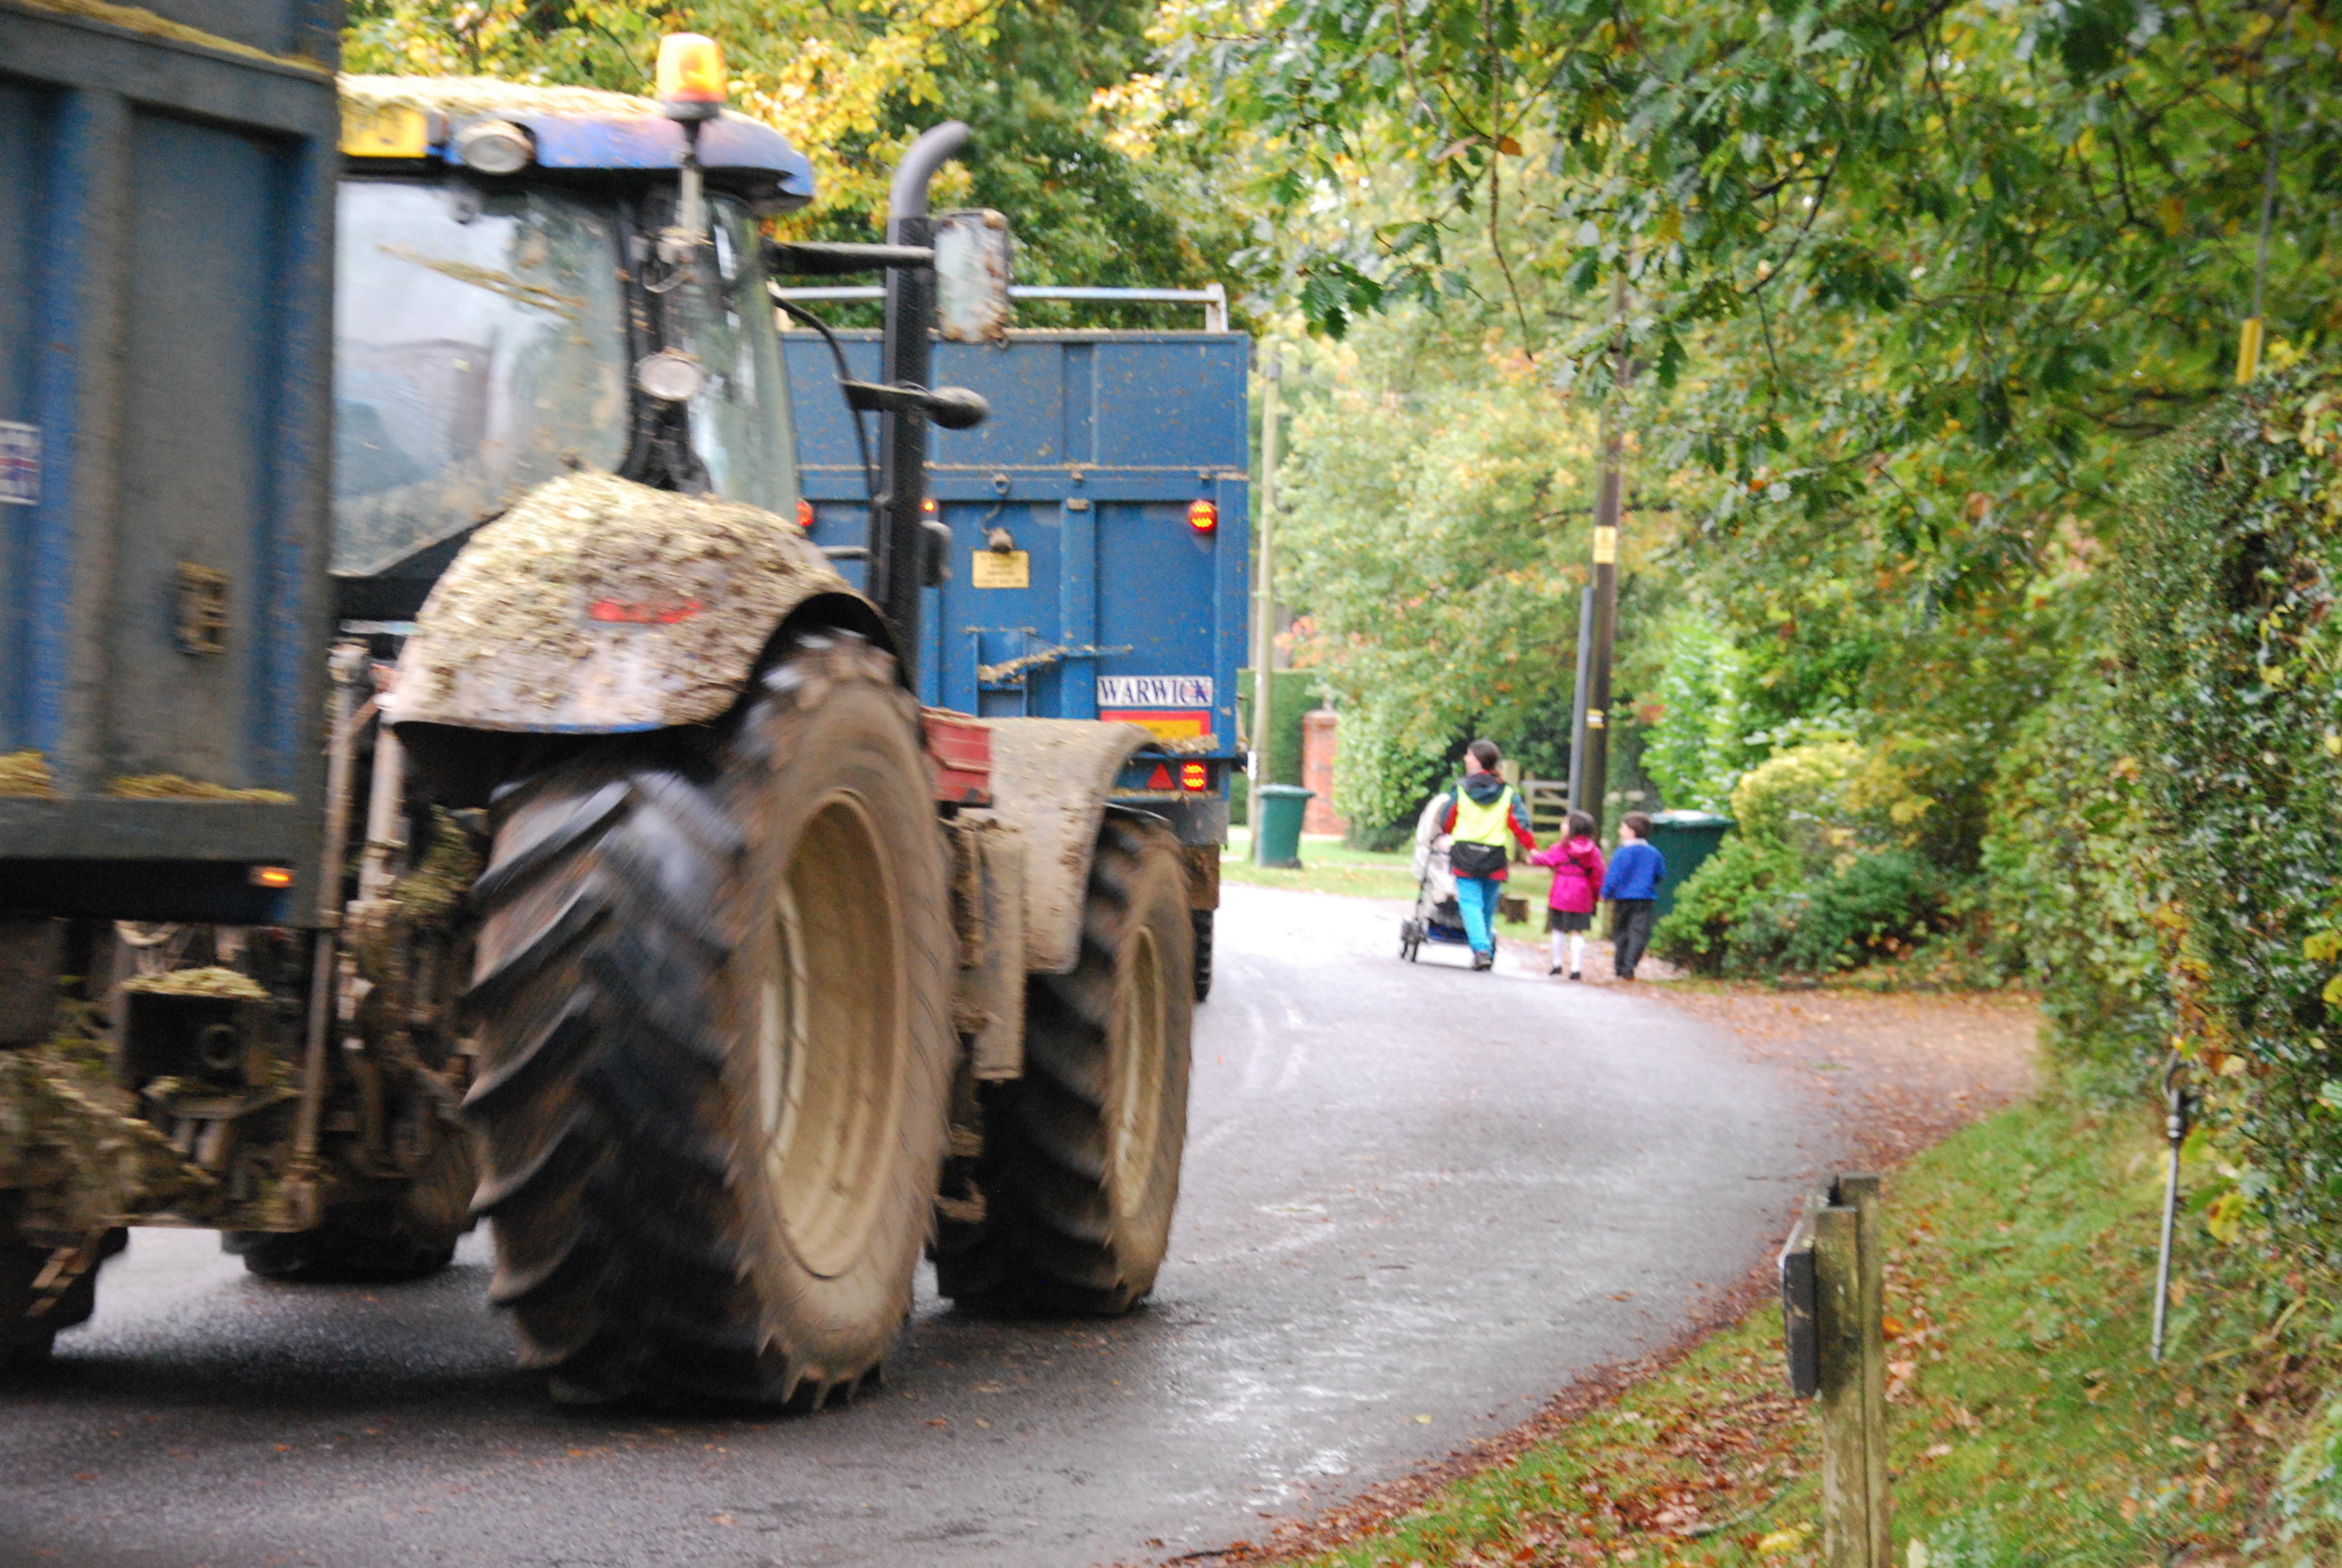 Two tractors unable to keep to their side of the lane